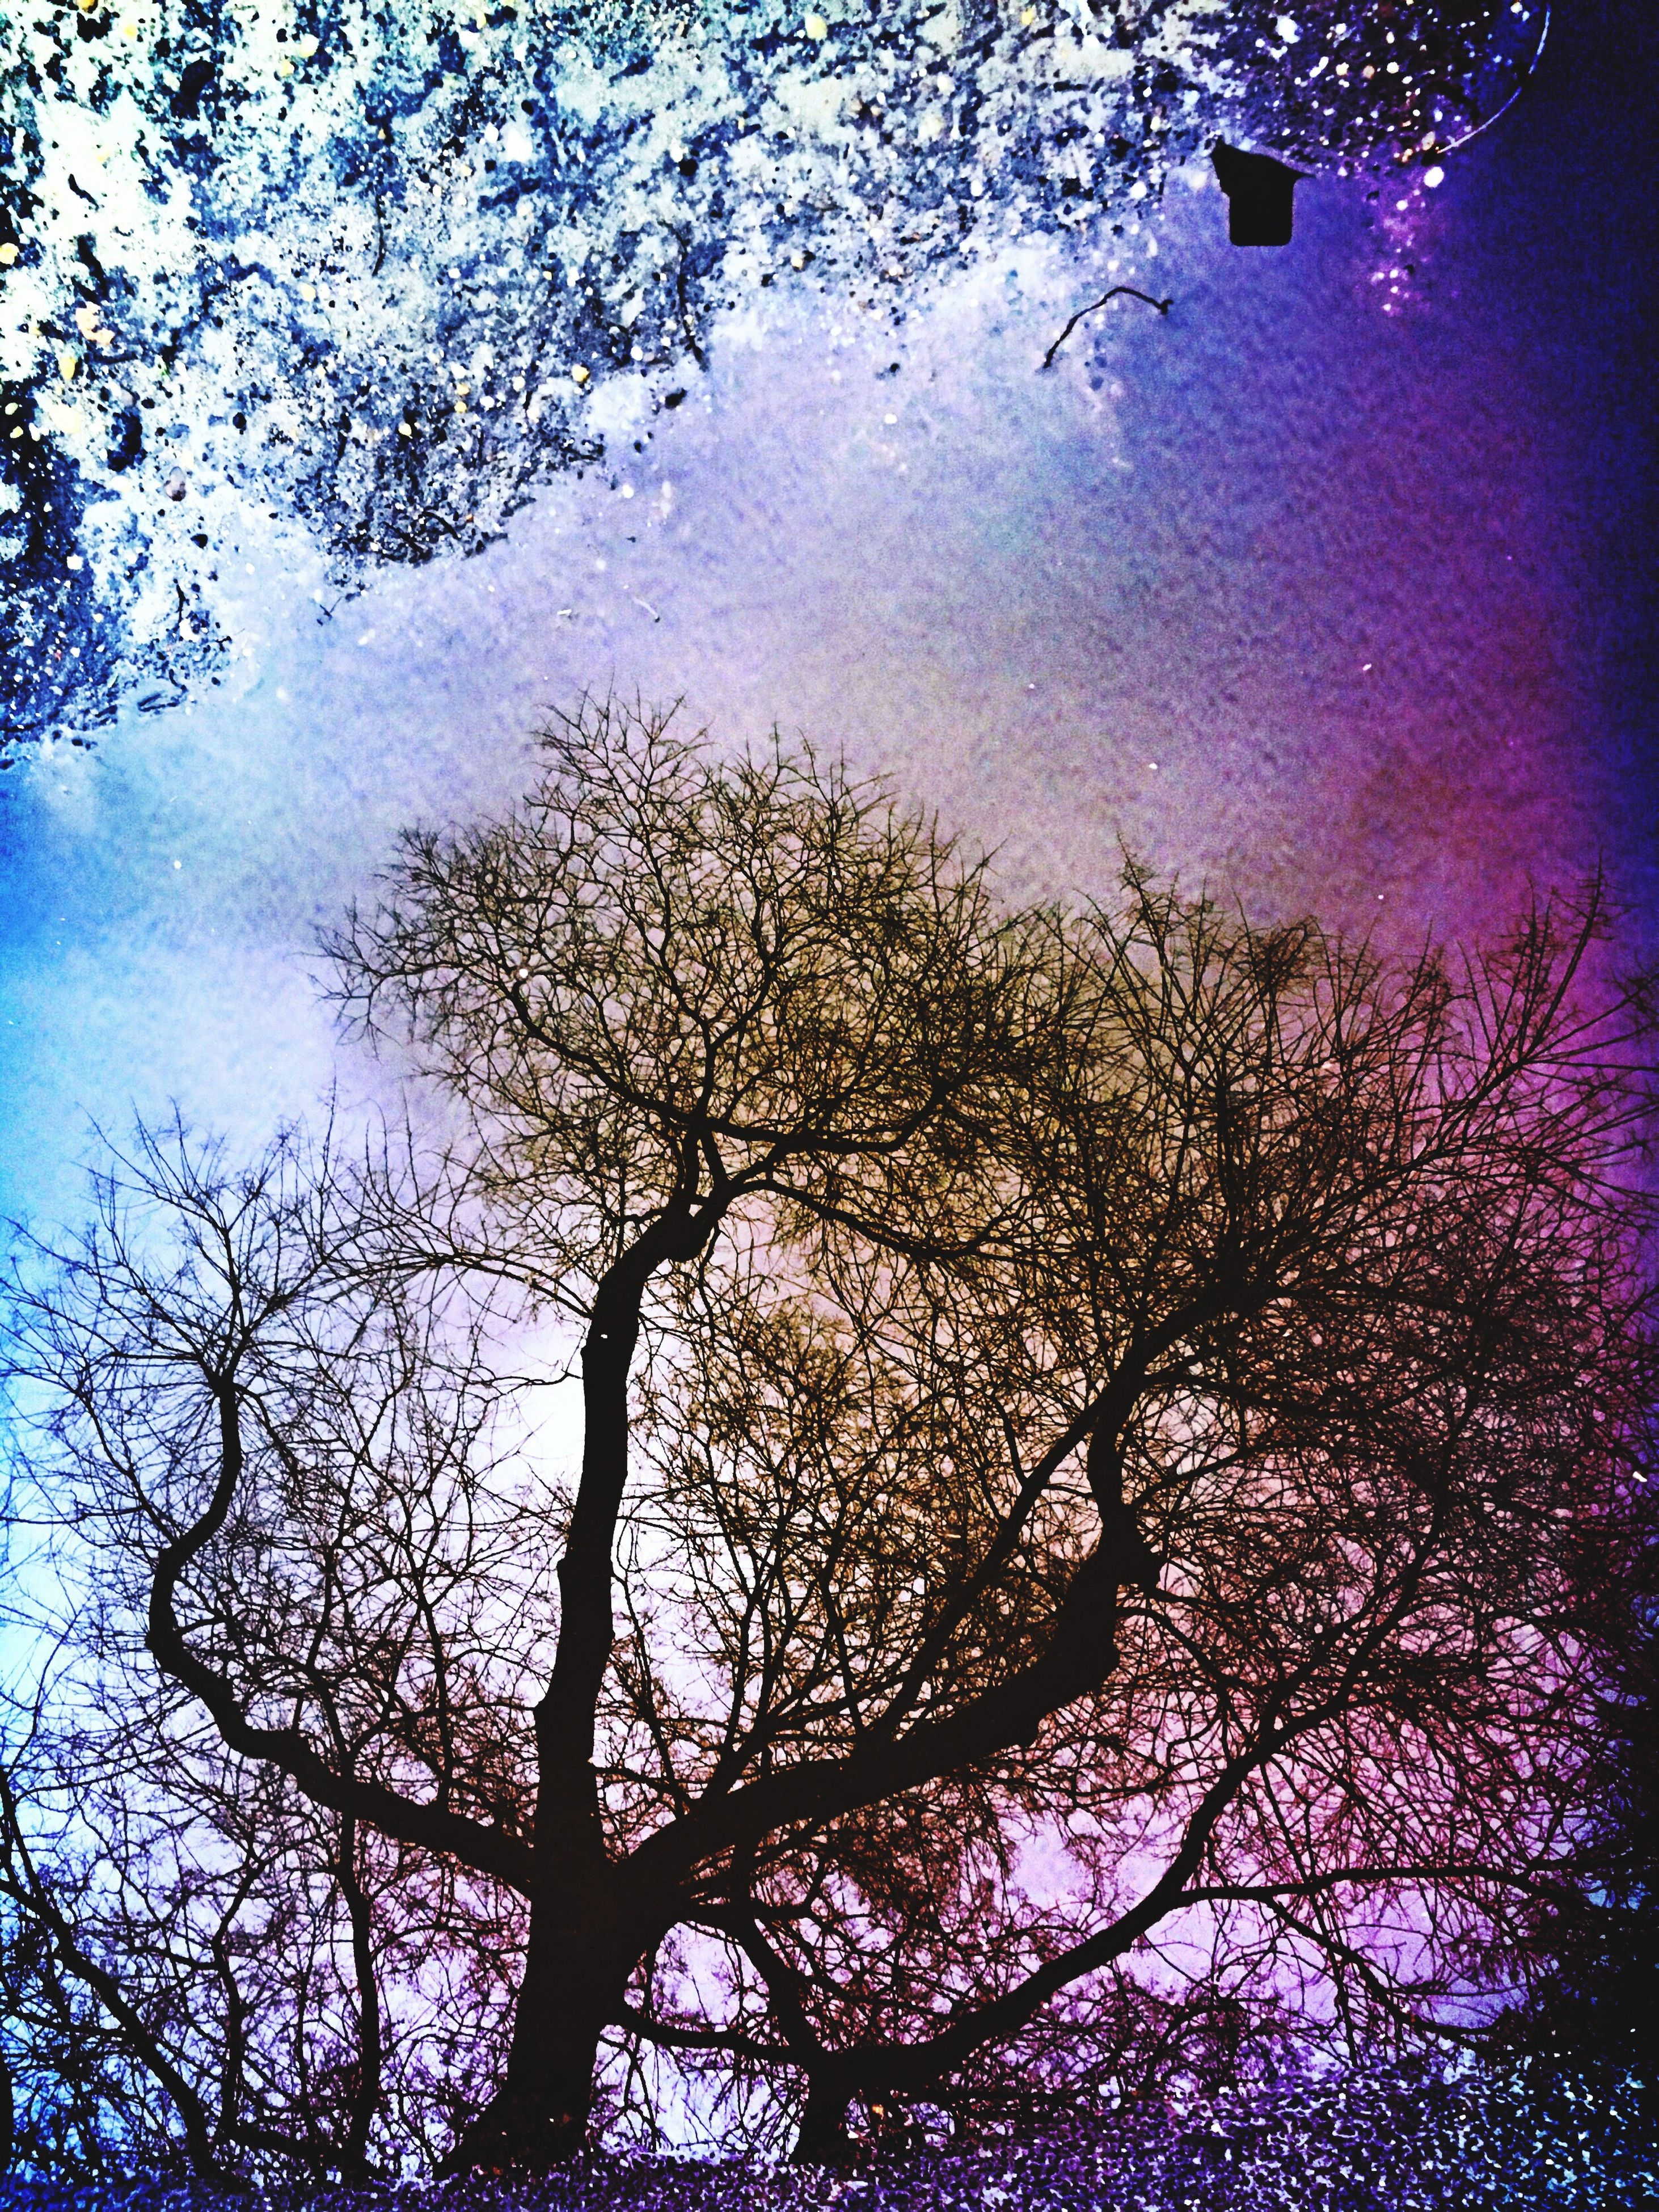 tree, branch, low angle view, nature, beauty in nature, sky, tranquility, bare tree, growth, blue, silhouette, scenics, night, no people, backgrounds, full frame, outdoors, water, tranquil scene, dusk